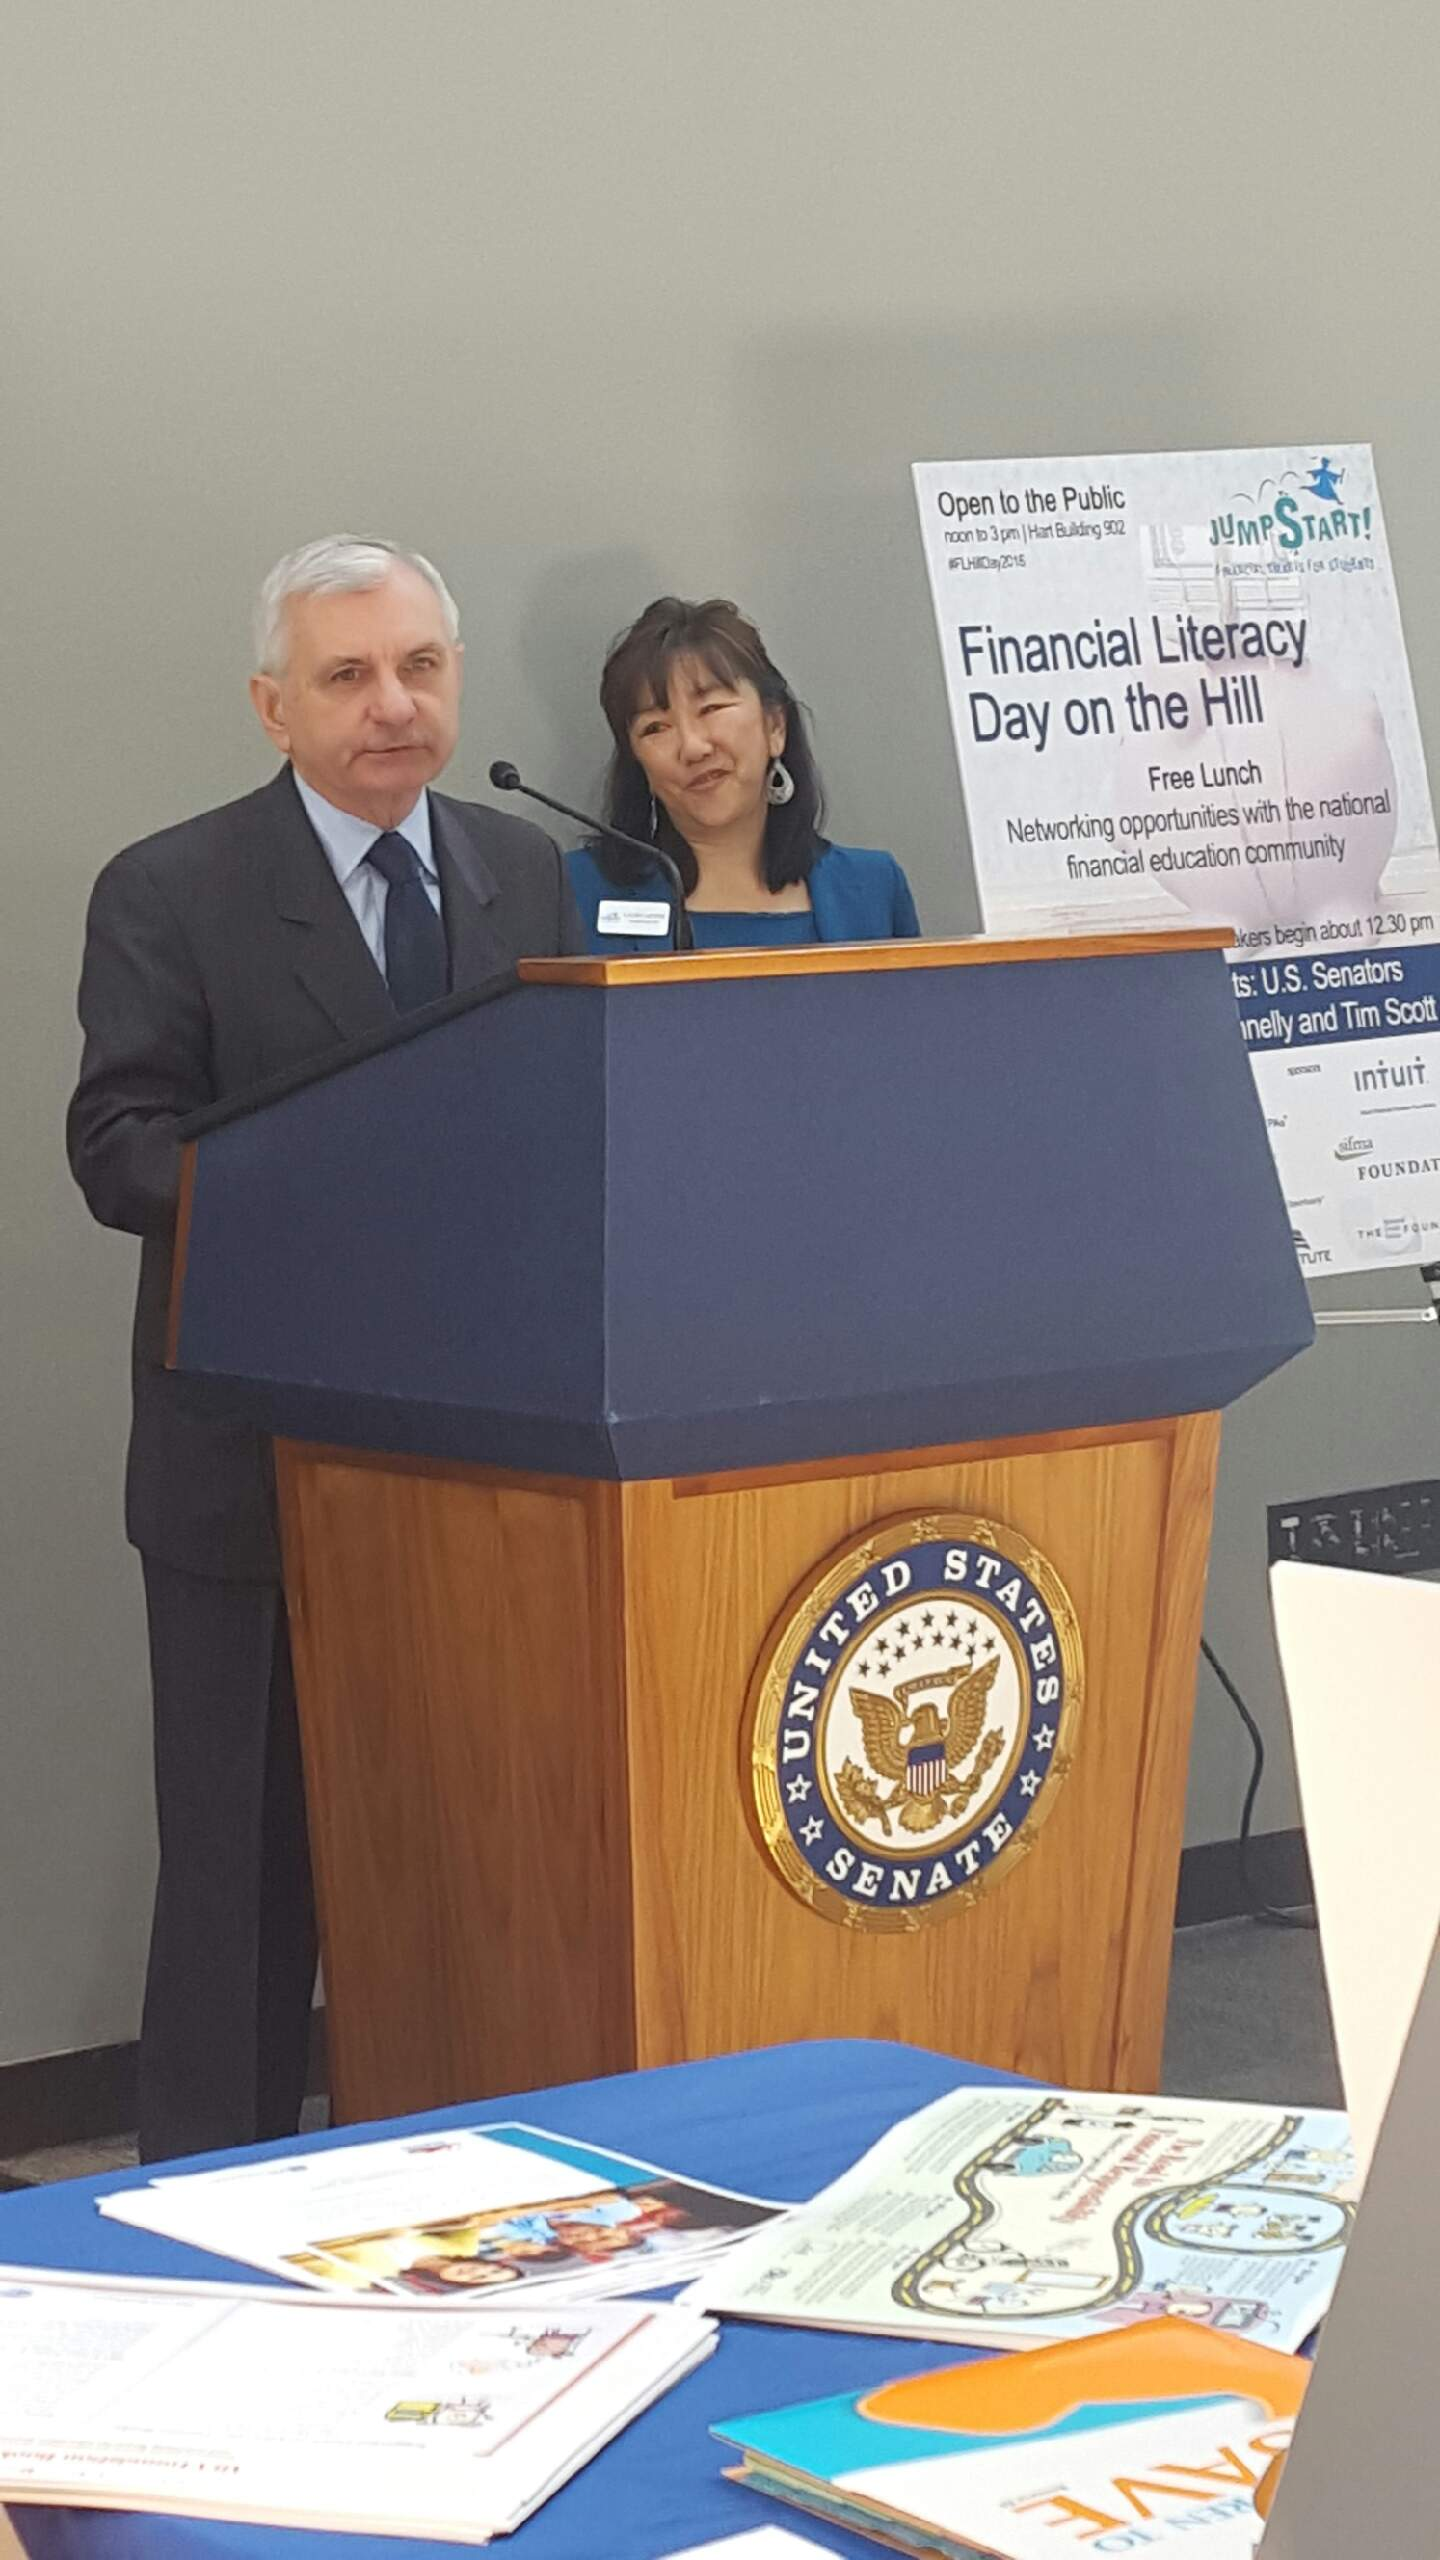 U.S. Senator Jack Reed and Laura Levine, President and CEO of Jump$tart Coalition